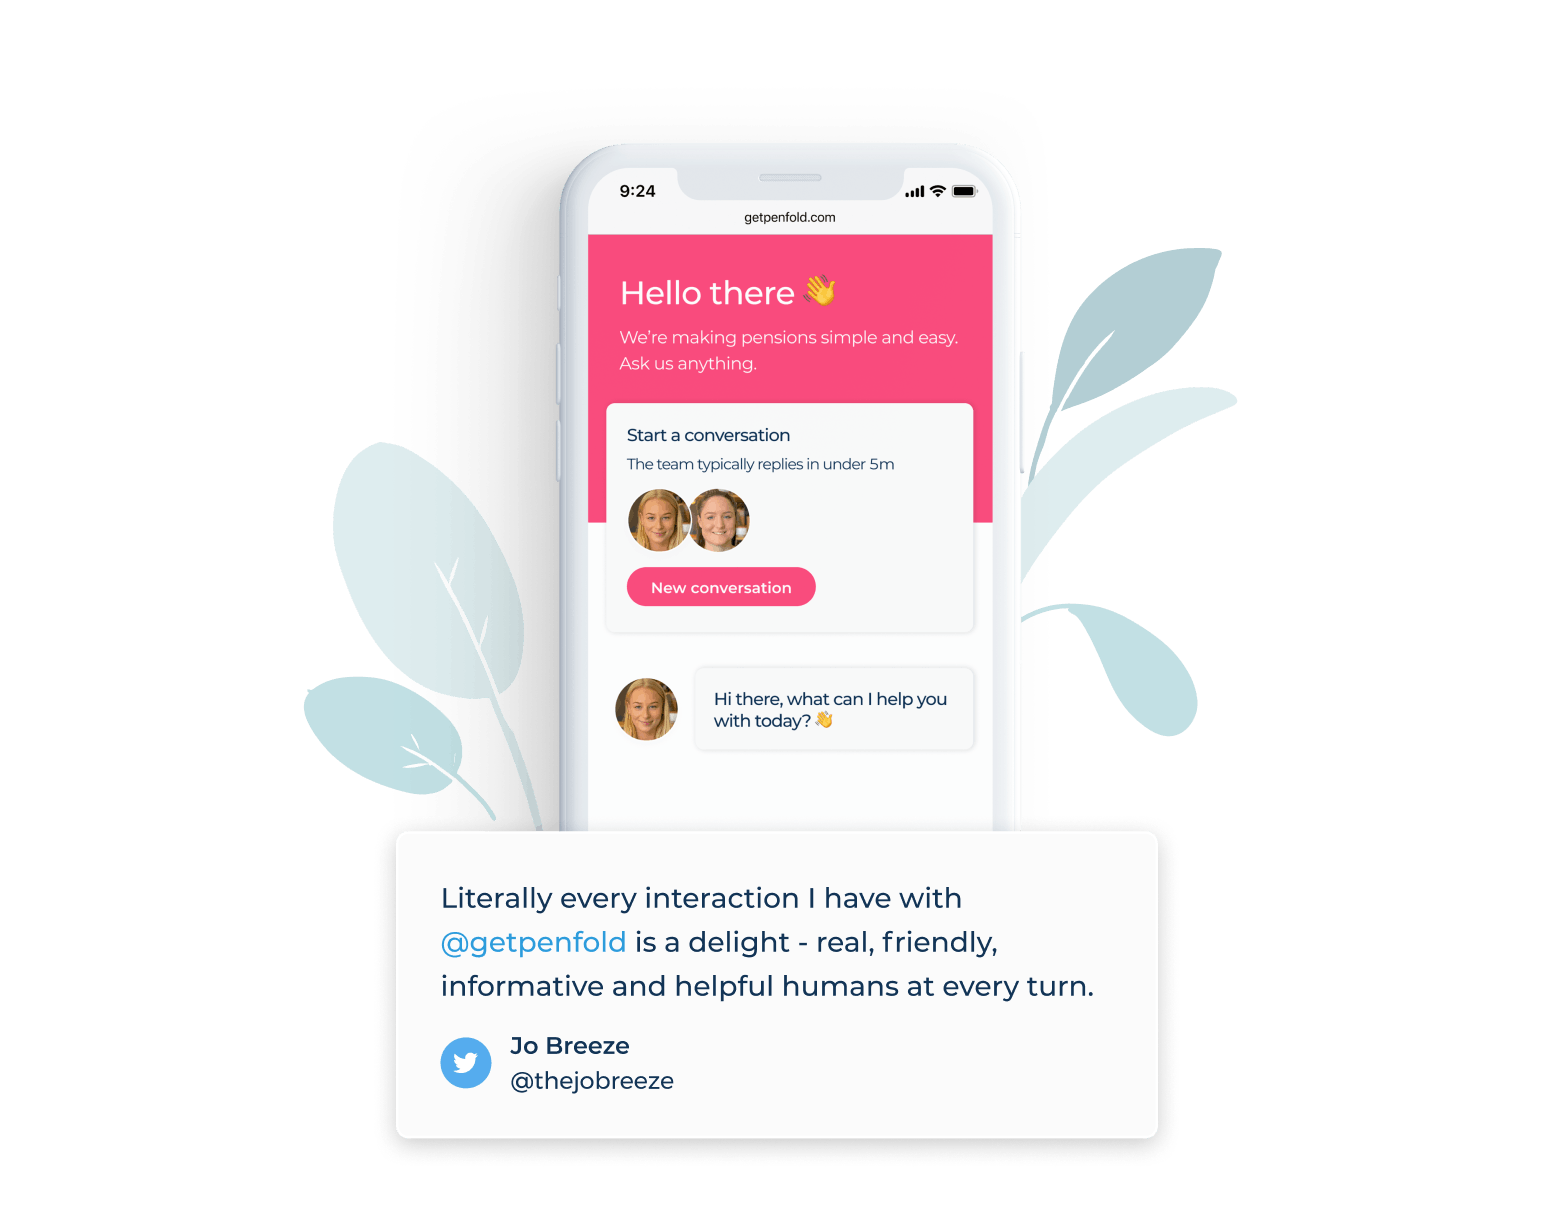 Tesimonial from Jo Breeze: Literally every interaction I have with @getpenfold is a delight - real, friendly, informative and helpful humans at every turn.